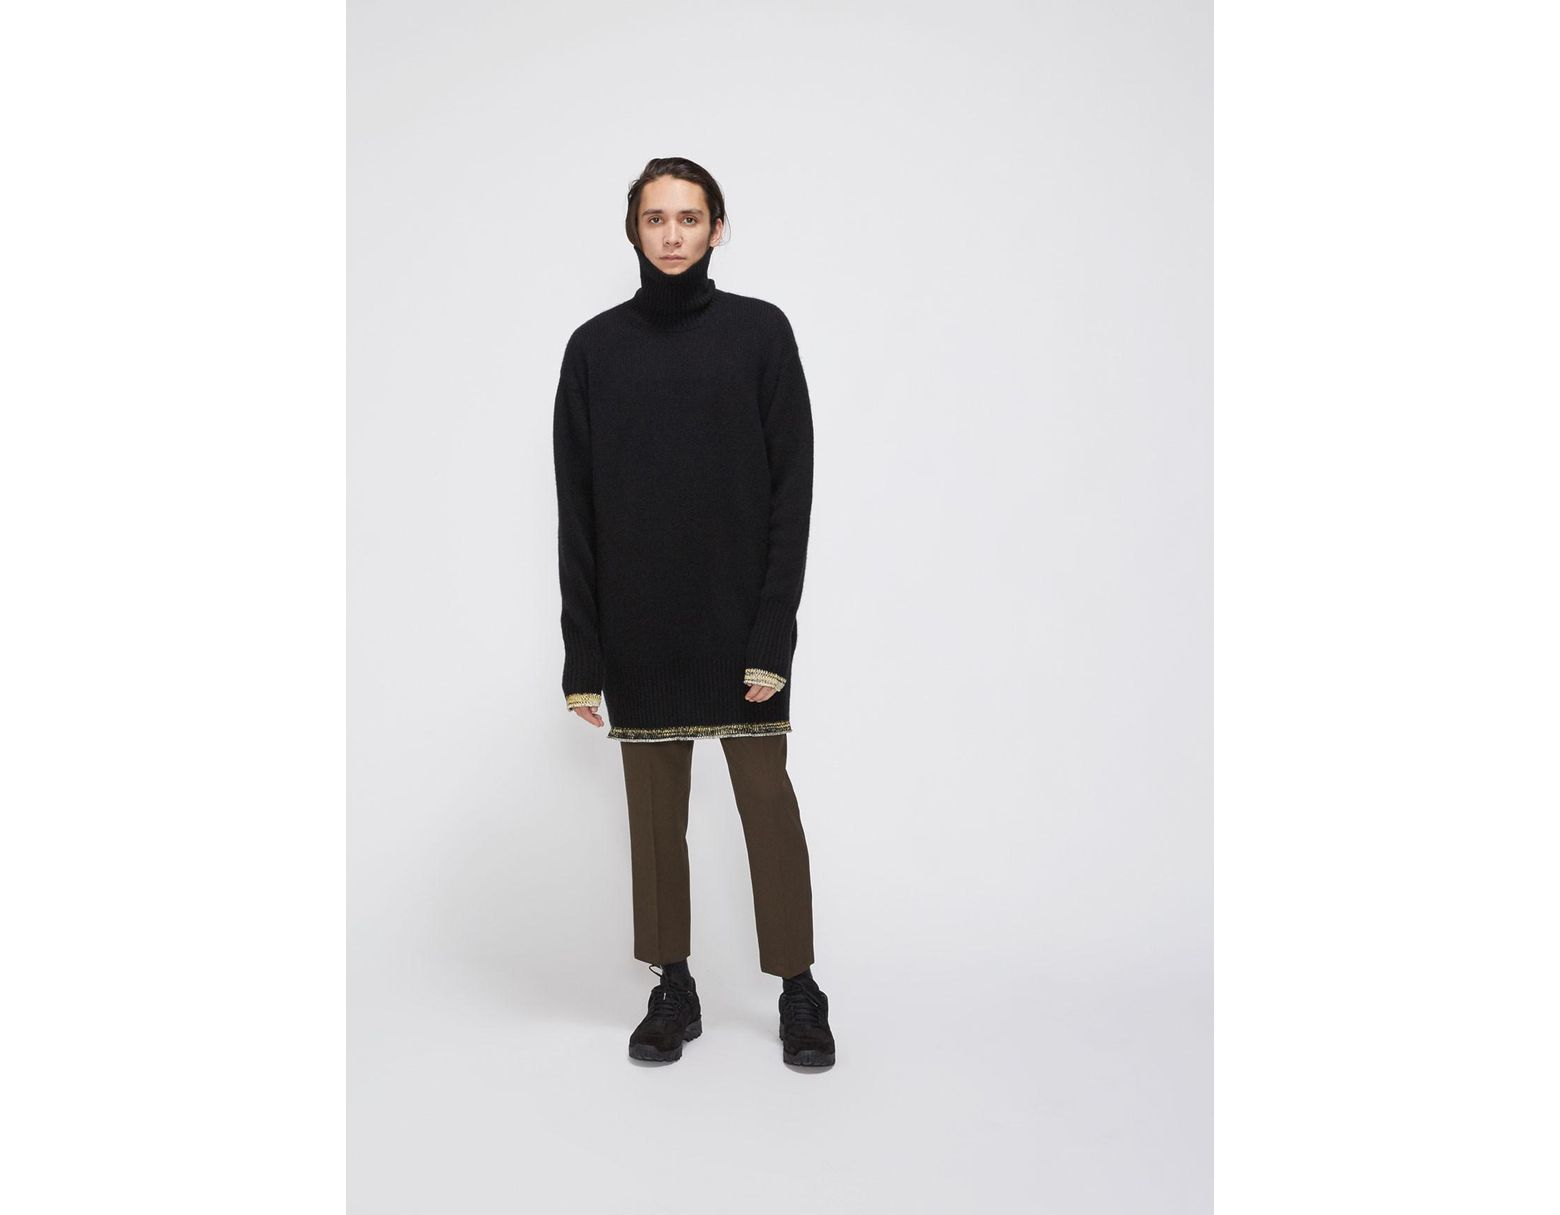 abf91abce4d21a Maison Margiela Oversized Turtleneck Sweater in Black for Men - Lyst